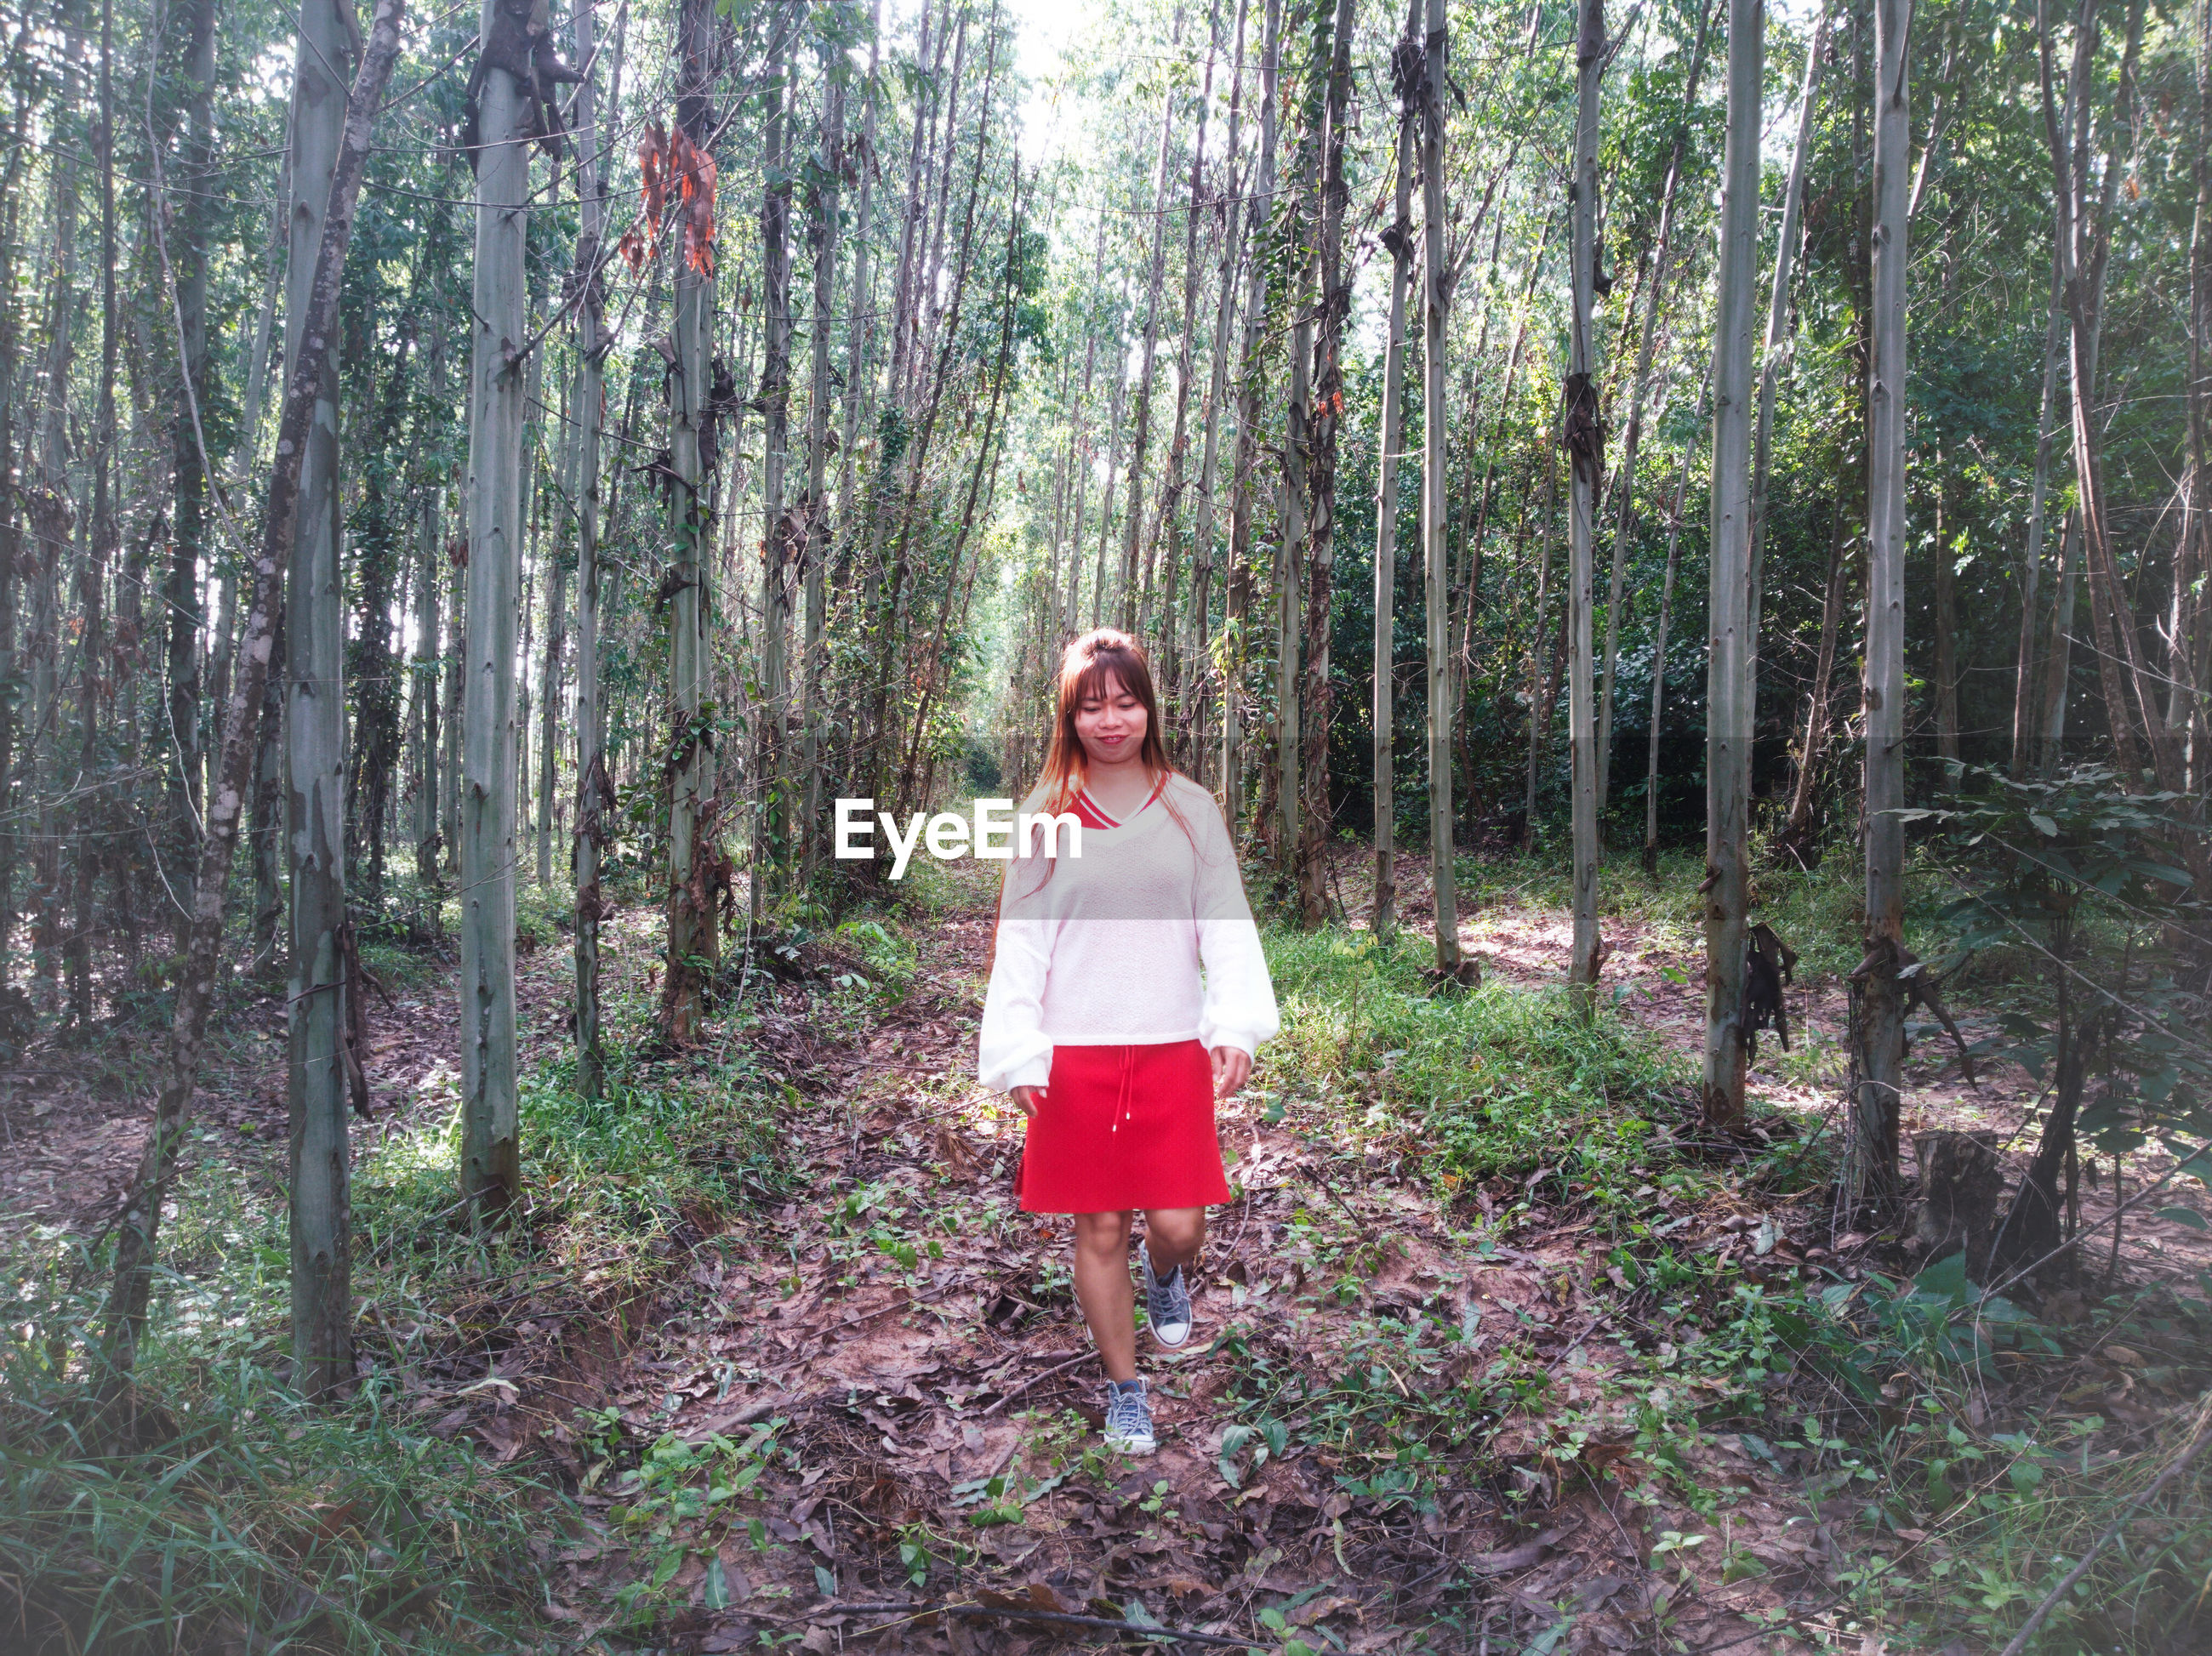 Full length of mid adult woman walking on field amidst trees in forest